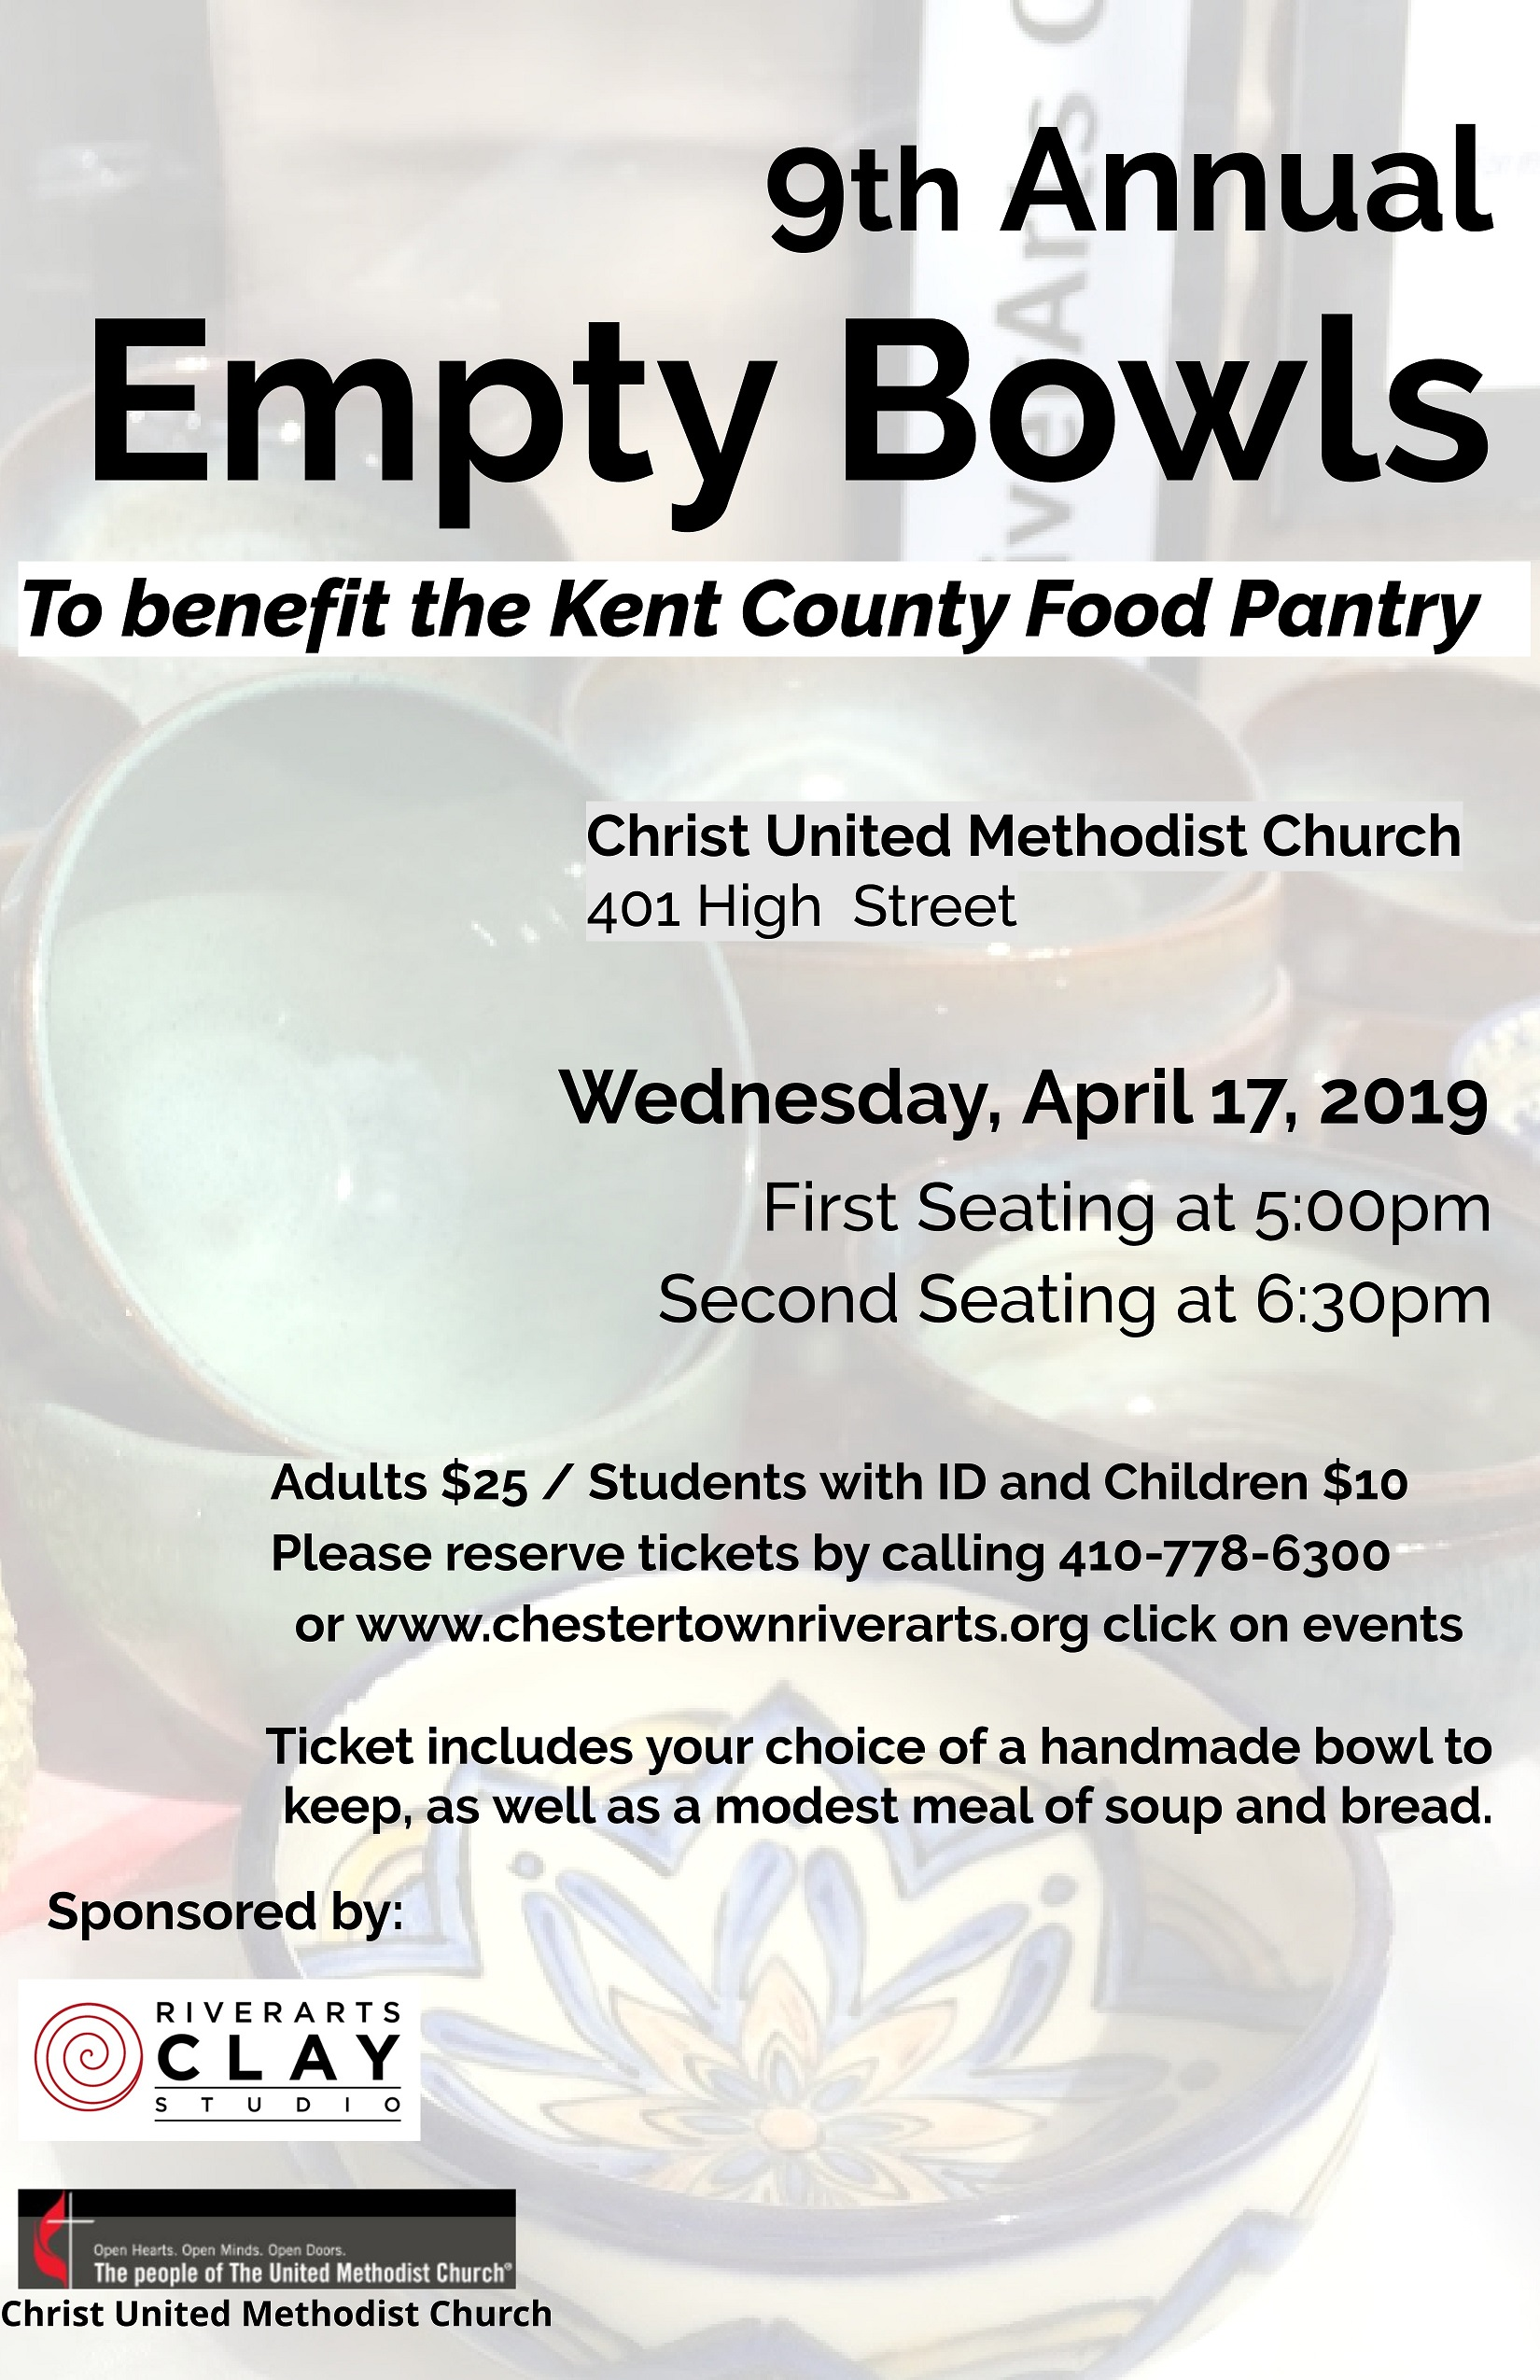 9th Annual Empty Bowls